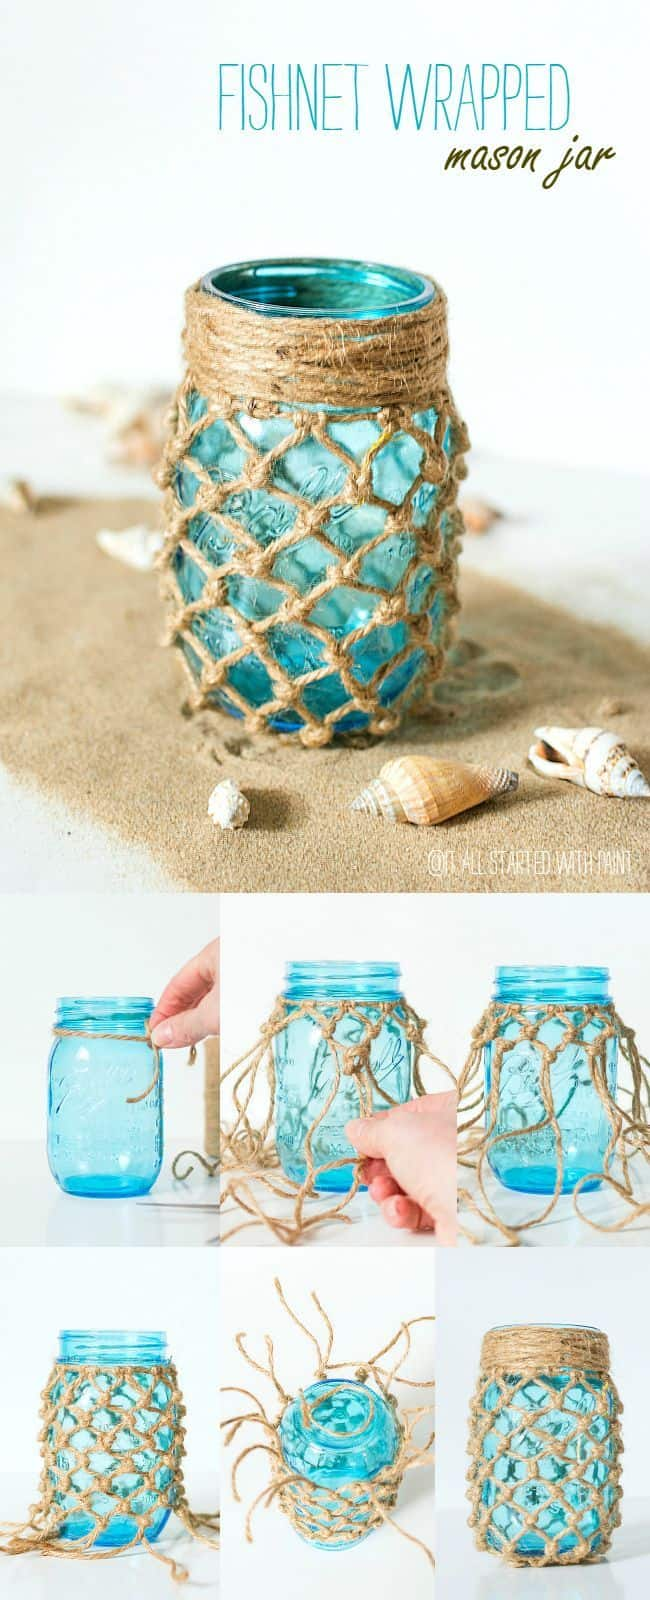 209550-fishnet-wrapped-mason-jars